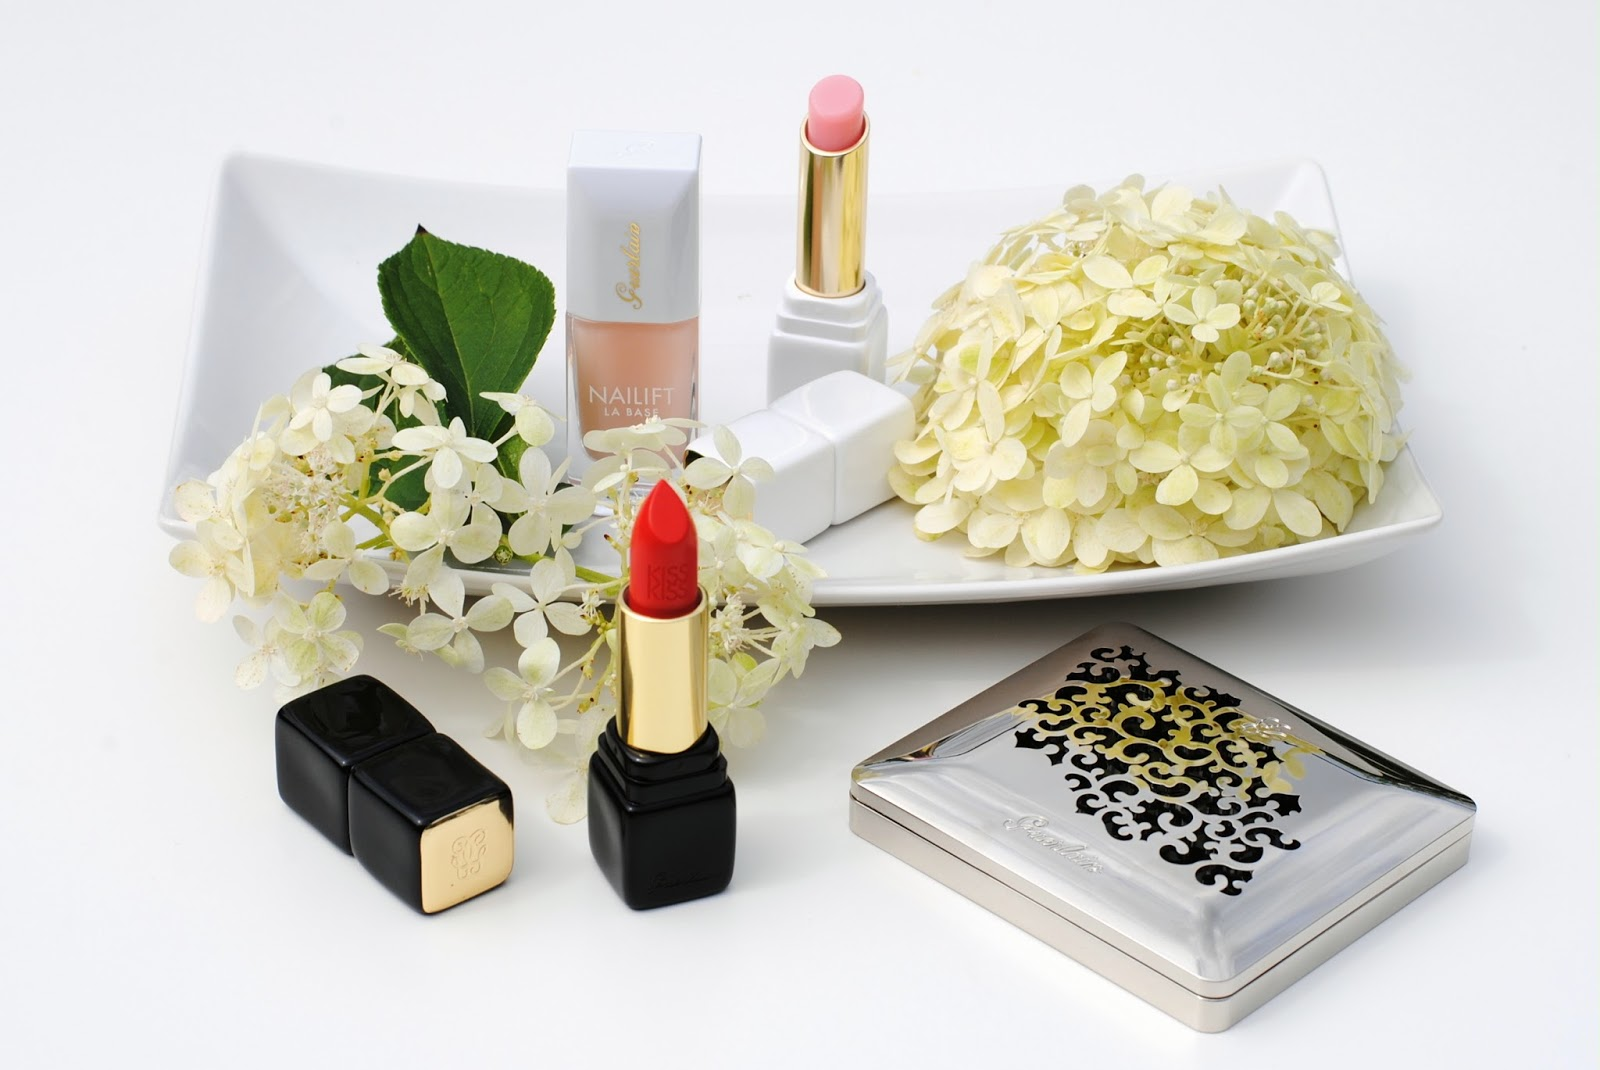 Bloom guerlain of rose fall collection best photo